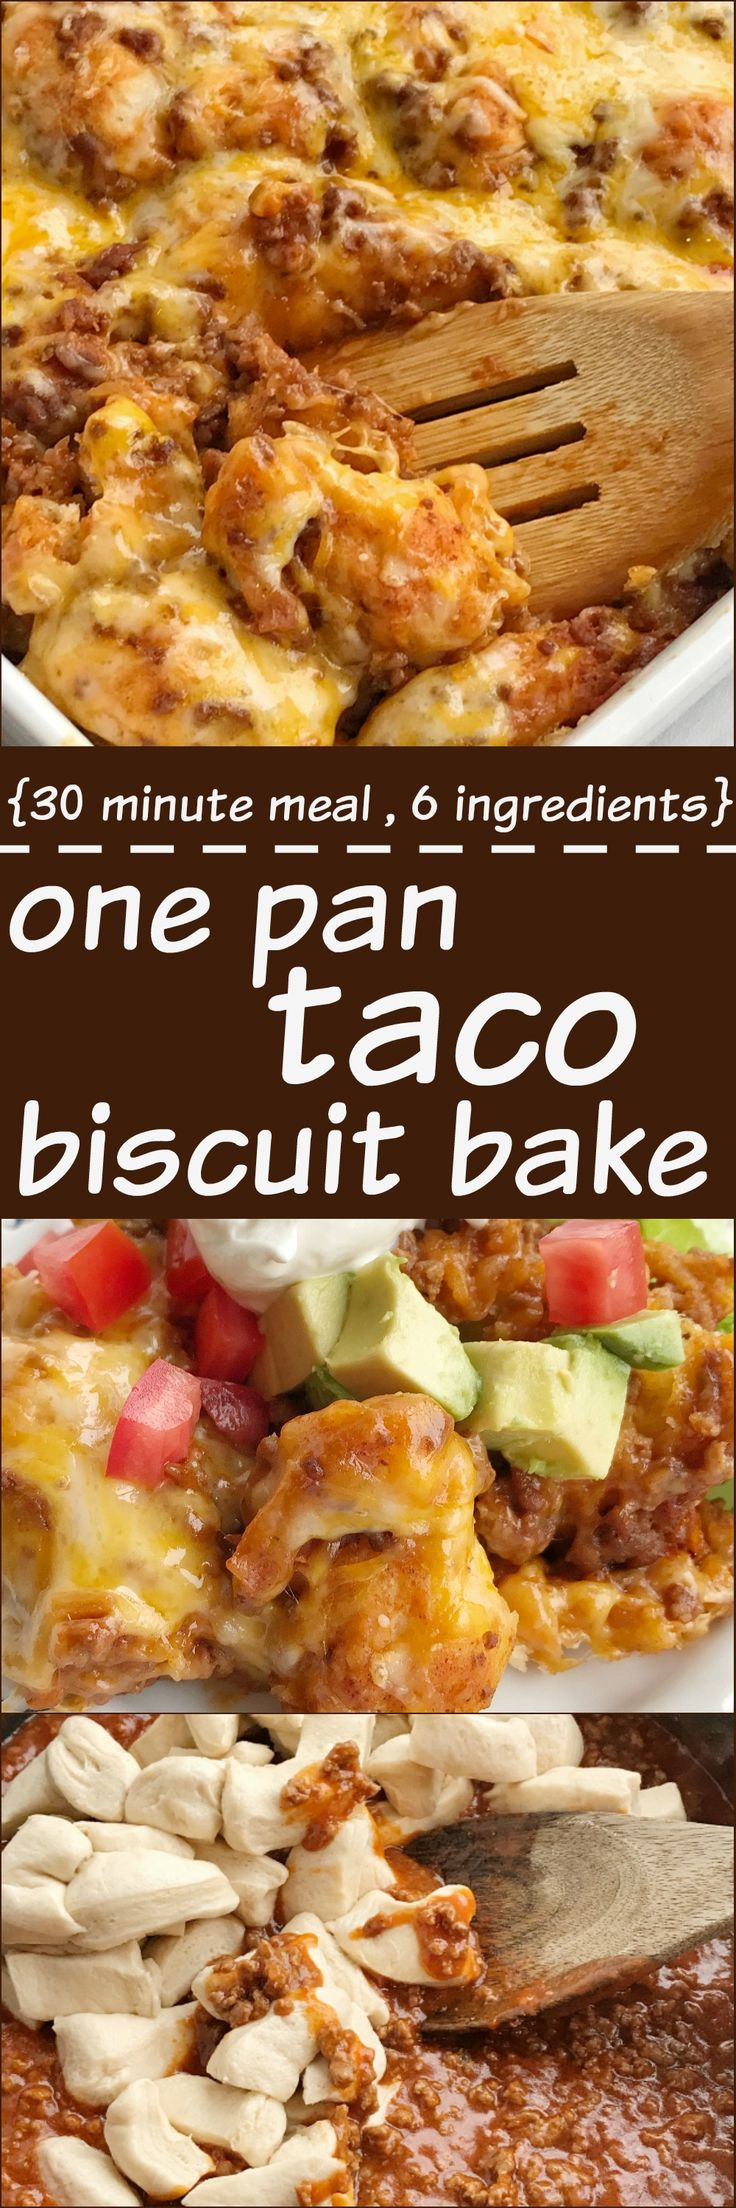 Taco biscuit bake is an easy & simple one pot meal. Puffed up refrigerated biscuits smothered in a beefy taco mixture and topped with melted cheese. Customize with your favorite taco toppings and you have a delicious dinner that the entire family will love!